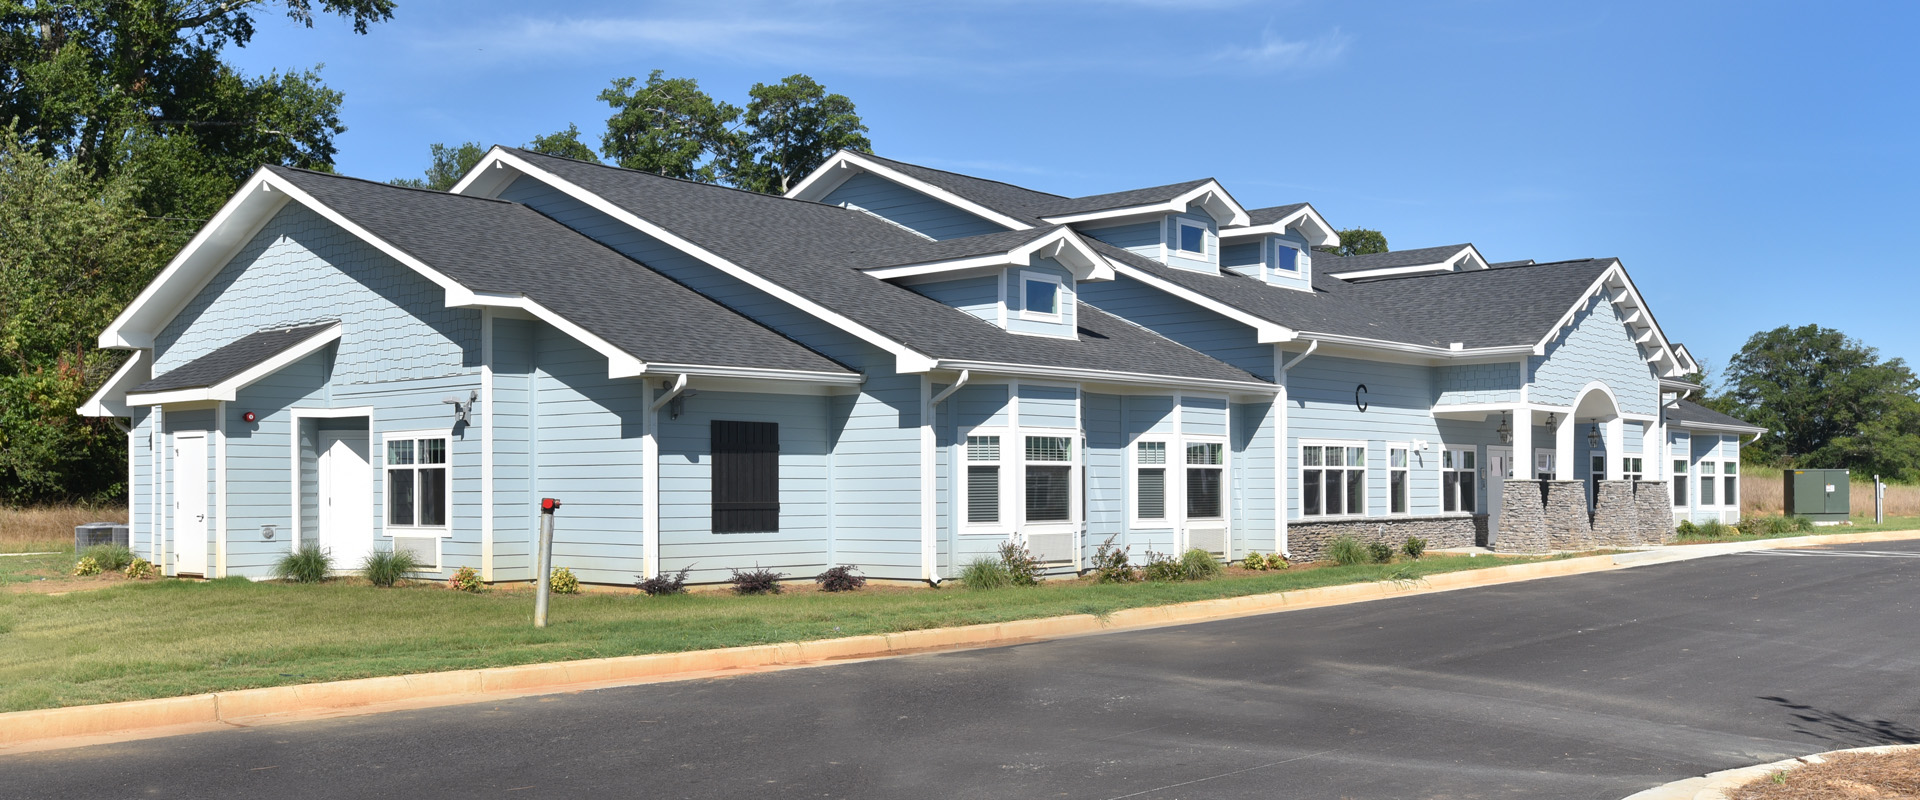 The Cottages at Rockmart - Condos